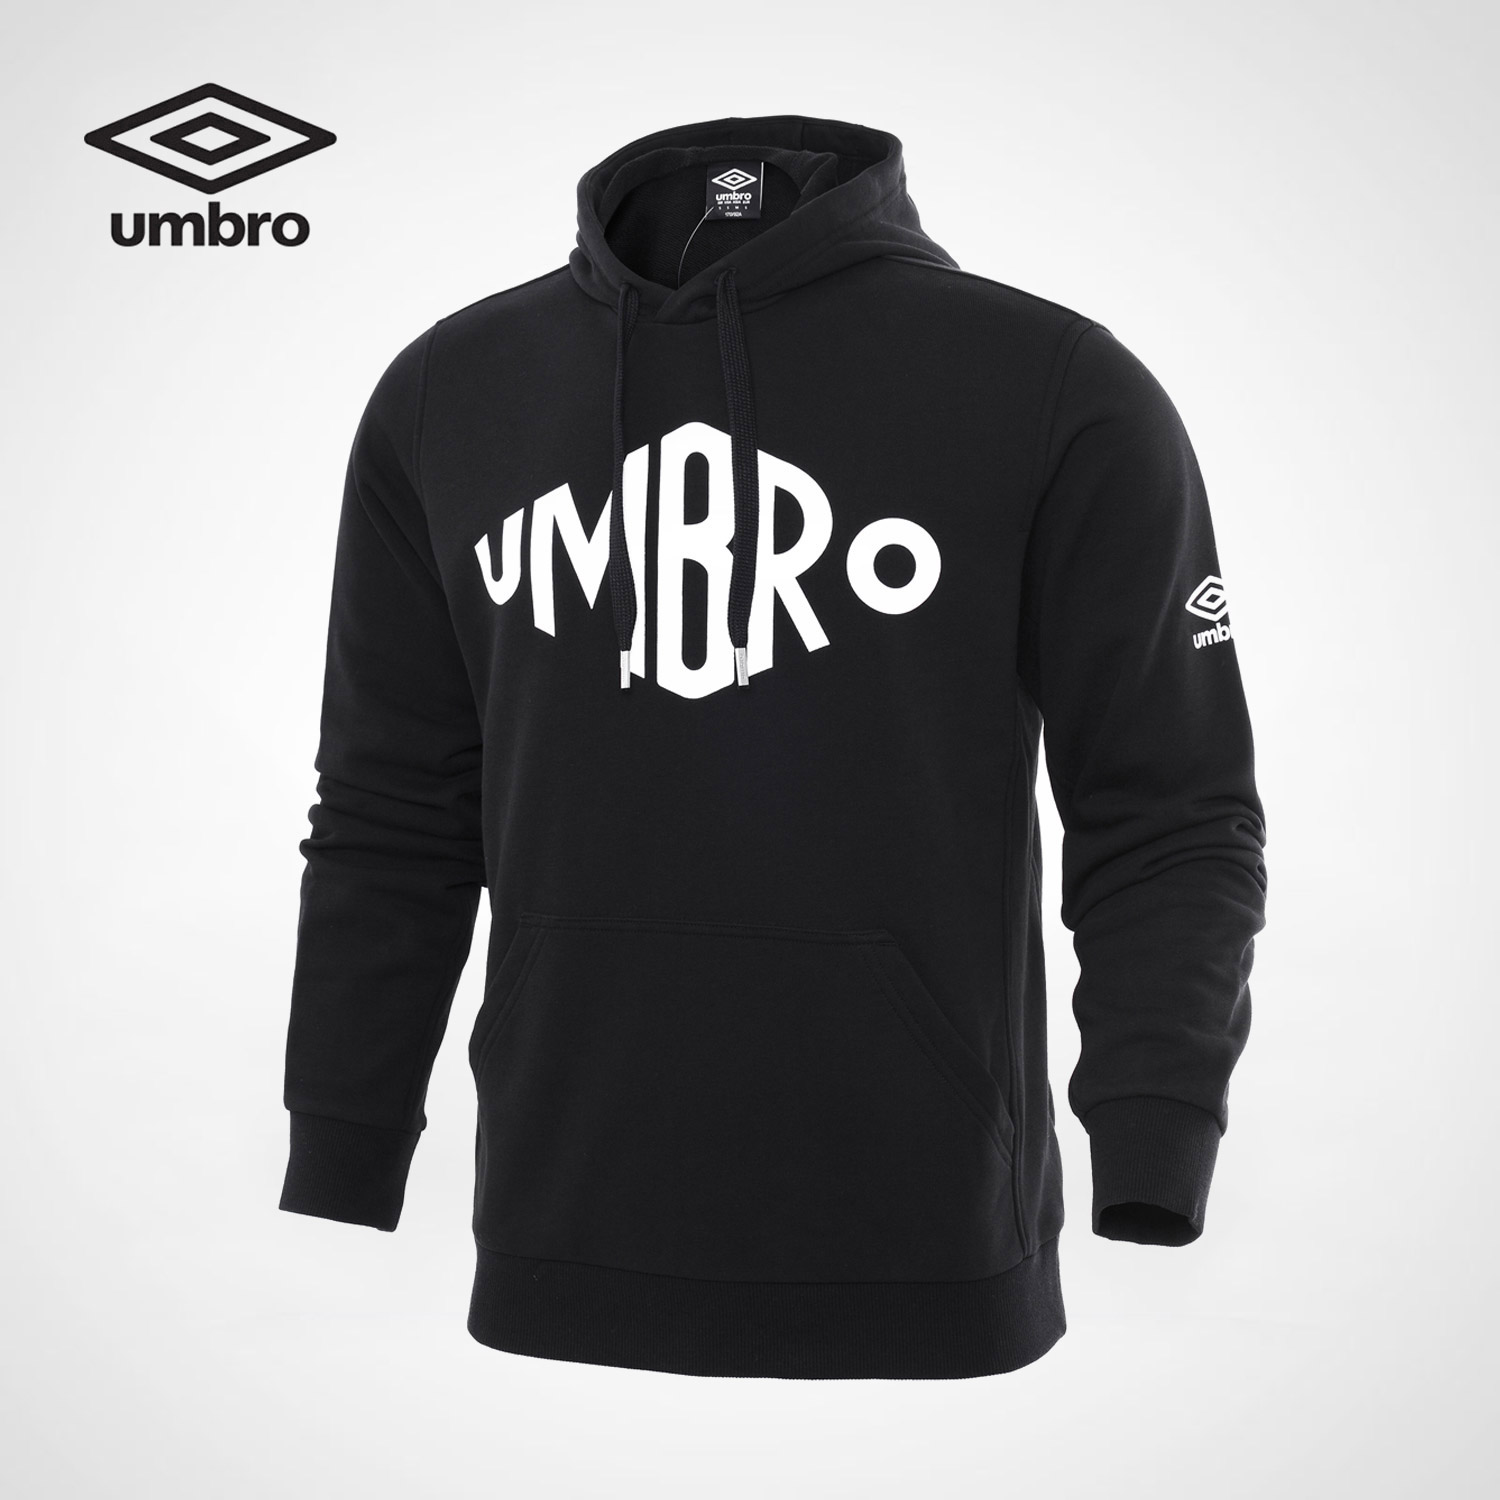 2019 year look- Clothes Umbro